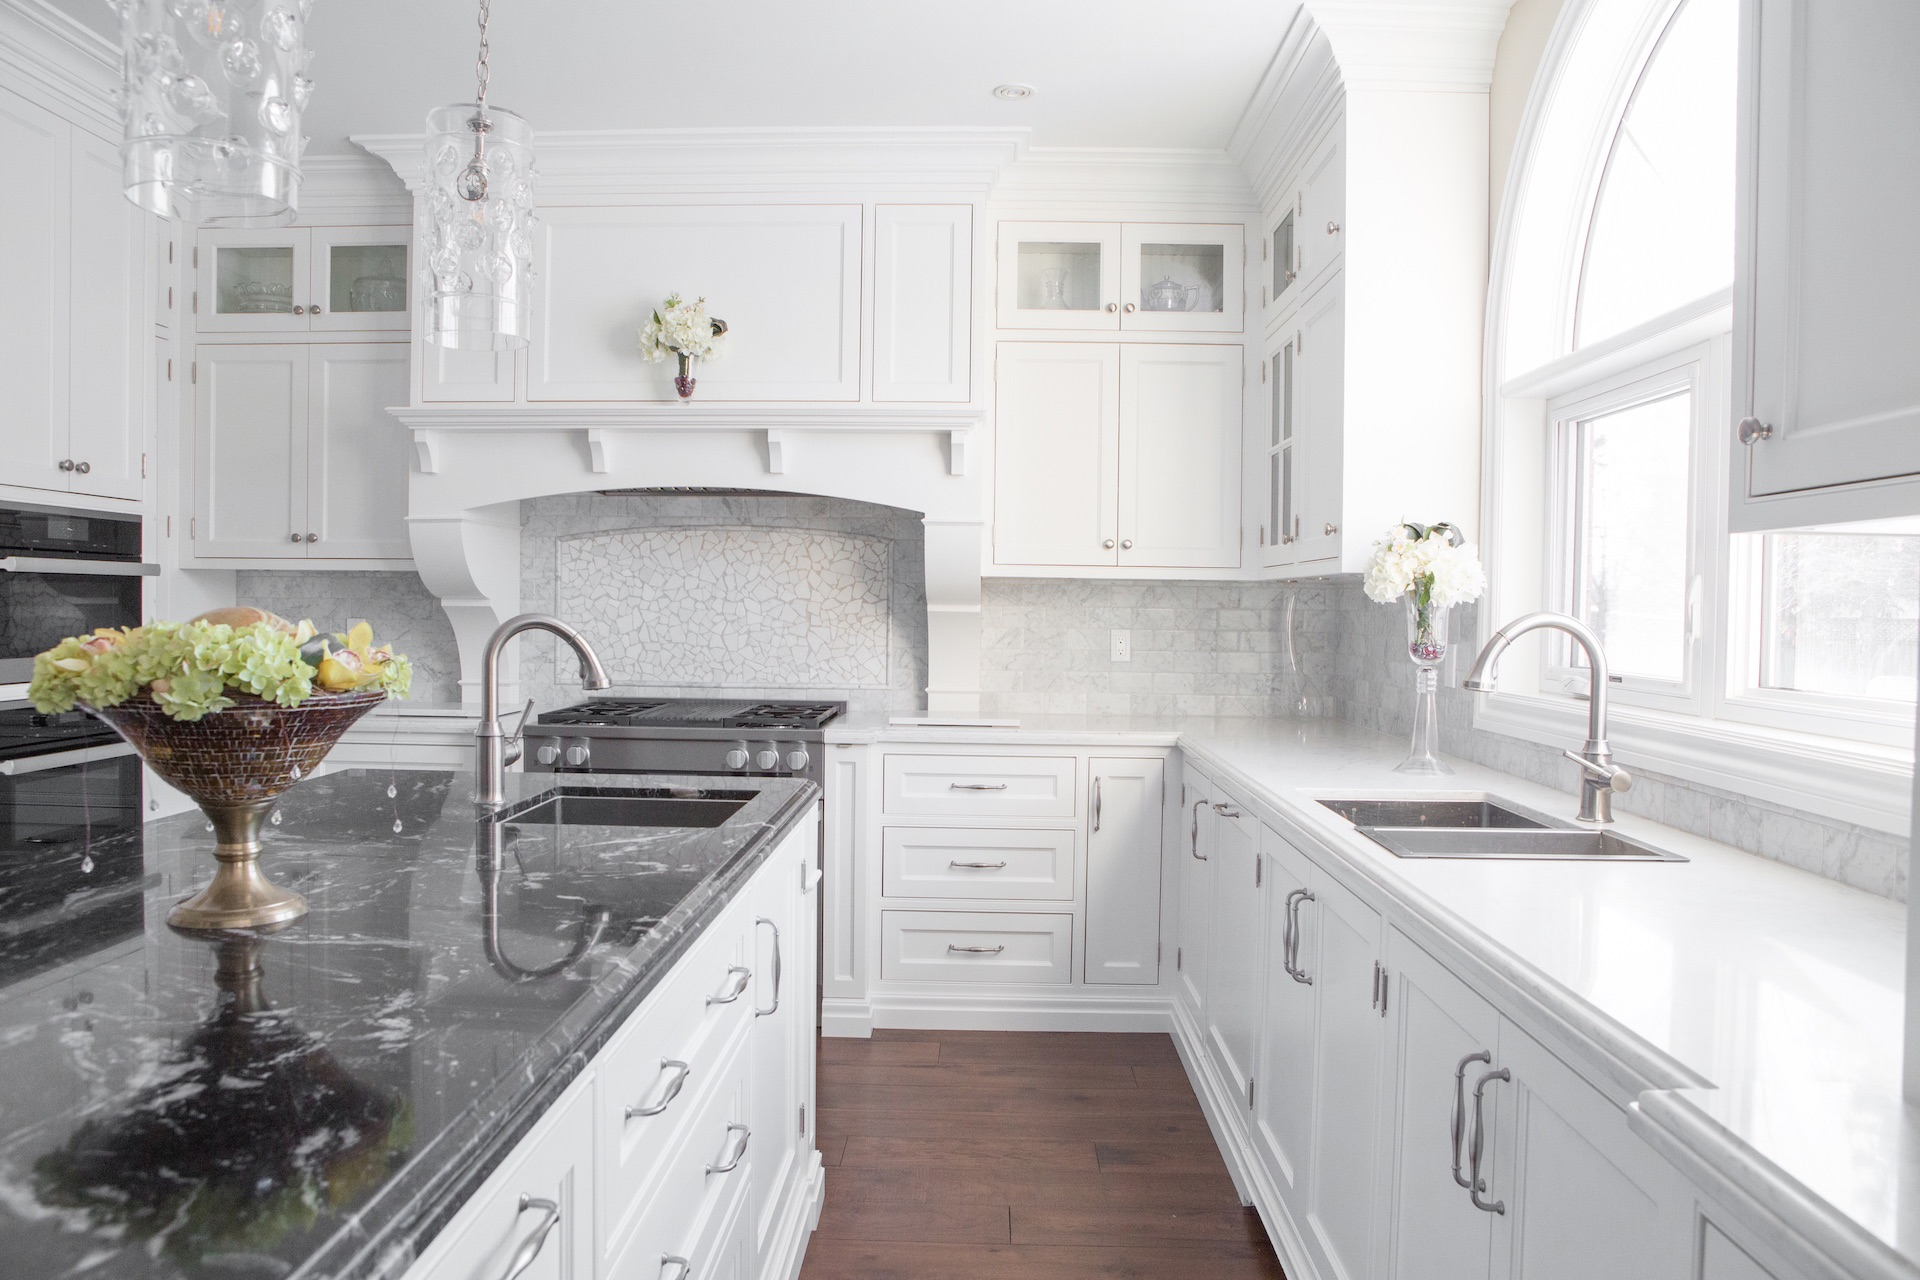 White kitchen with black counter top